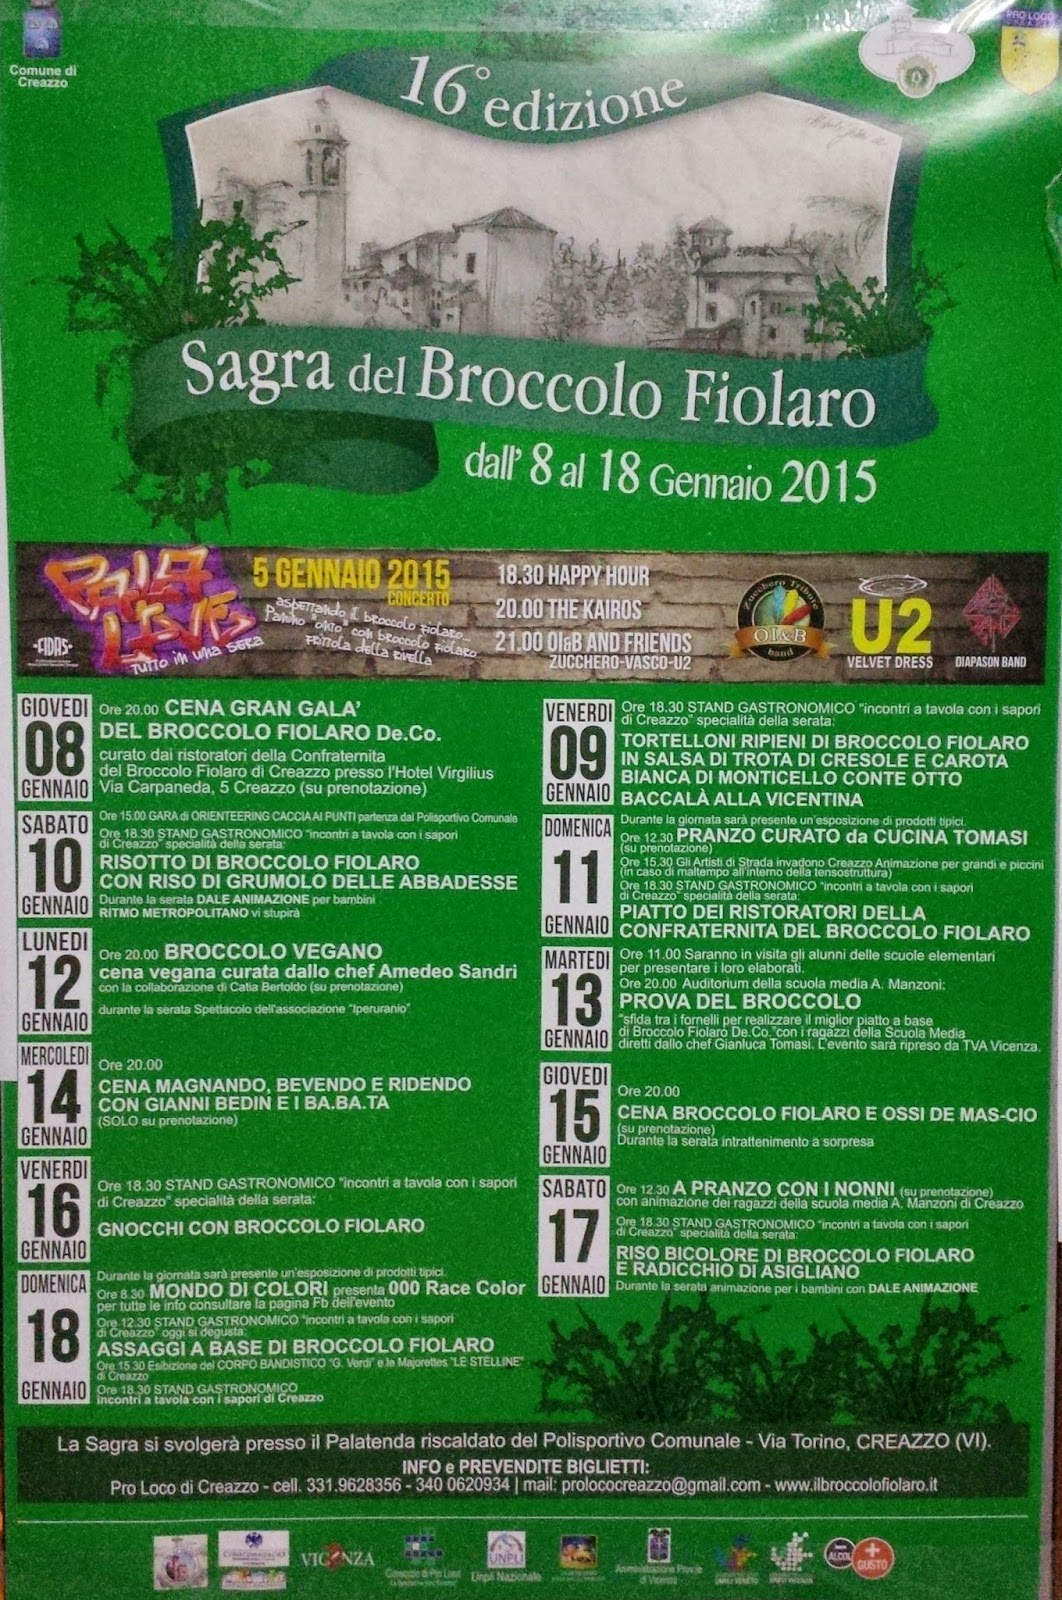 A poster advertises the festival of the broccolo fiolaro in Creazzo